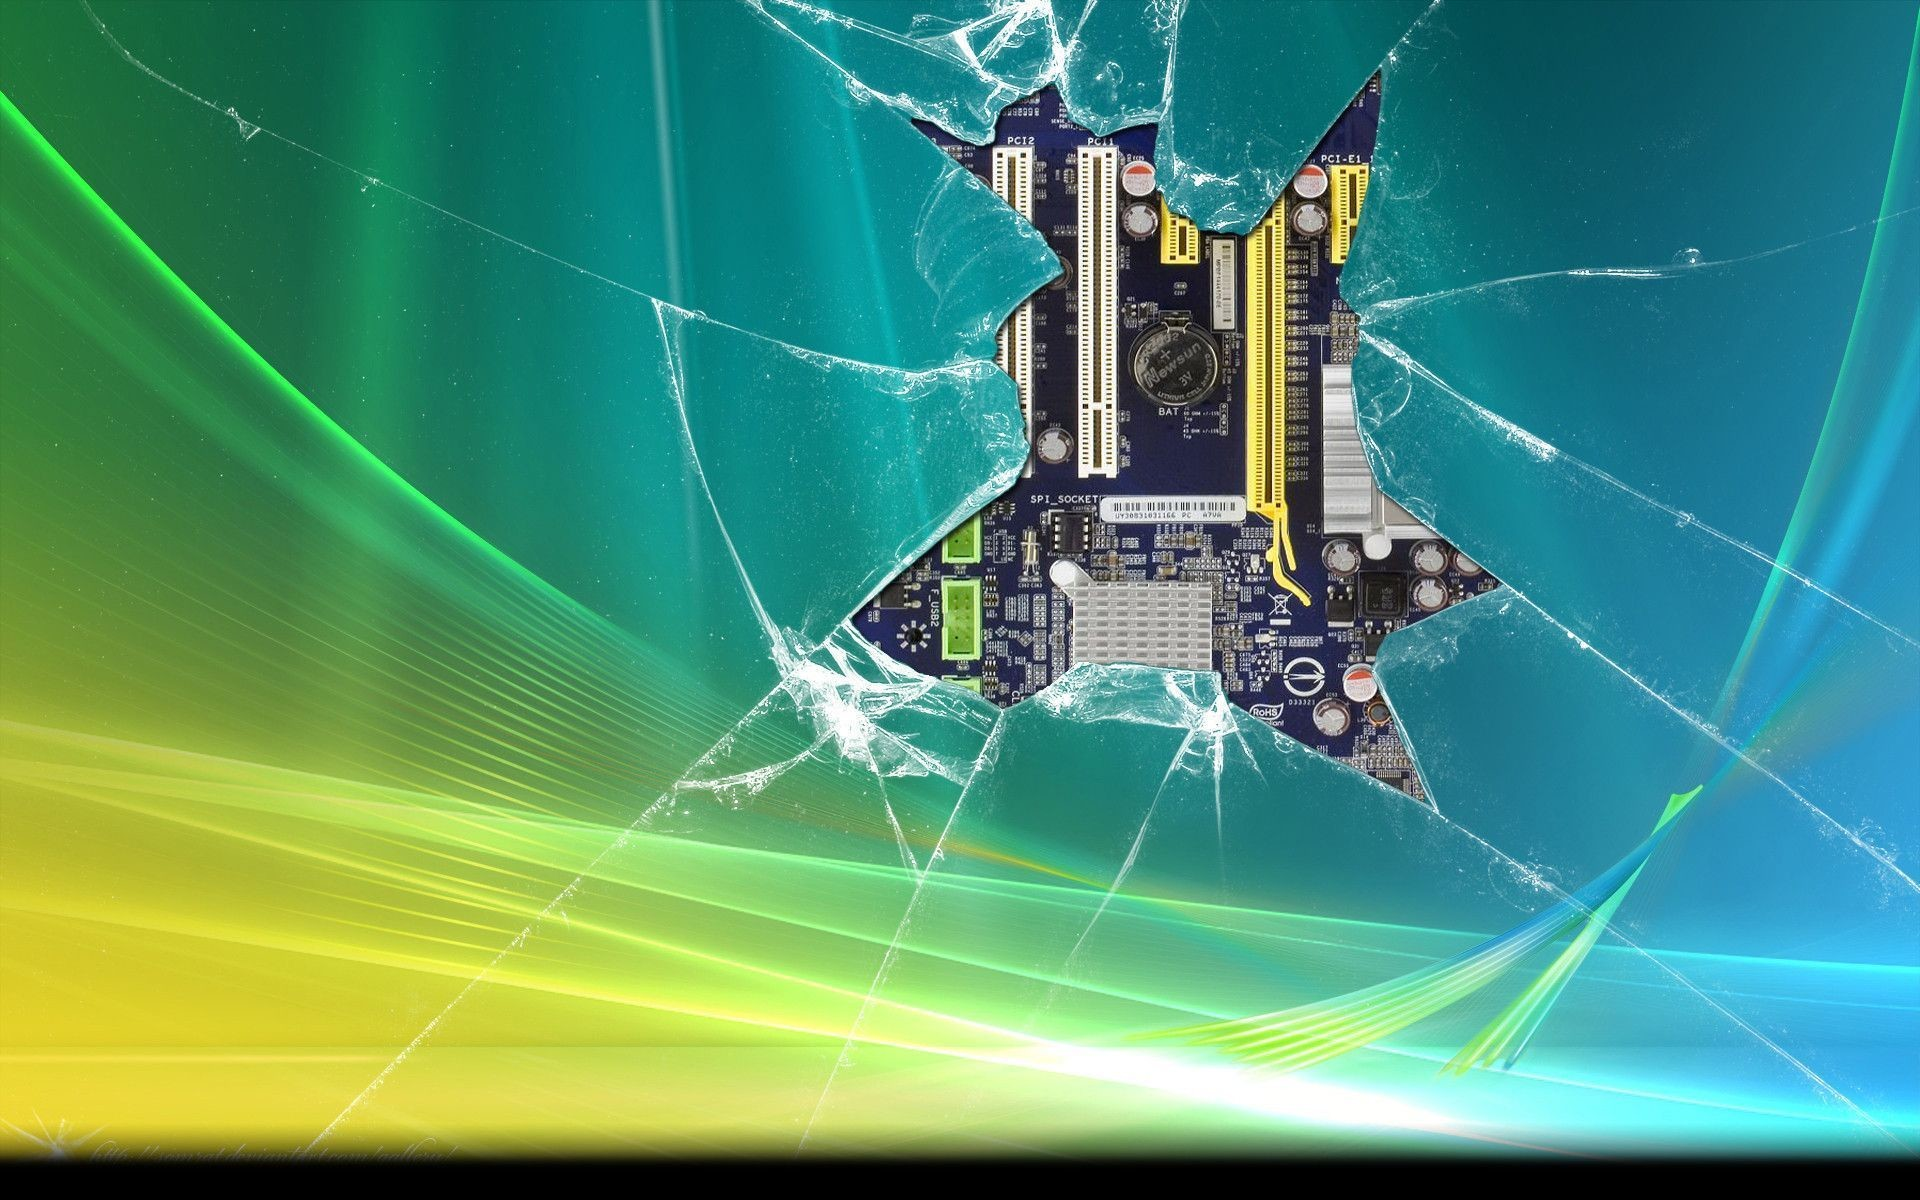 Cracked screen wallpaper windows 10 77 images - Cool screensavers for cracked screens ...